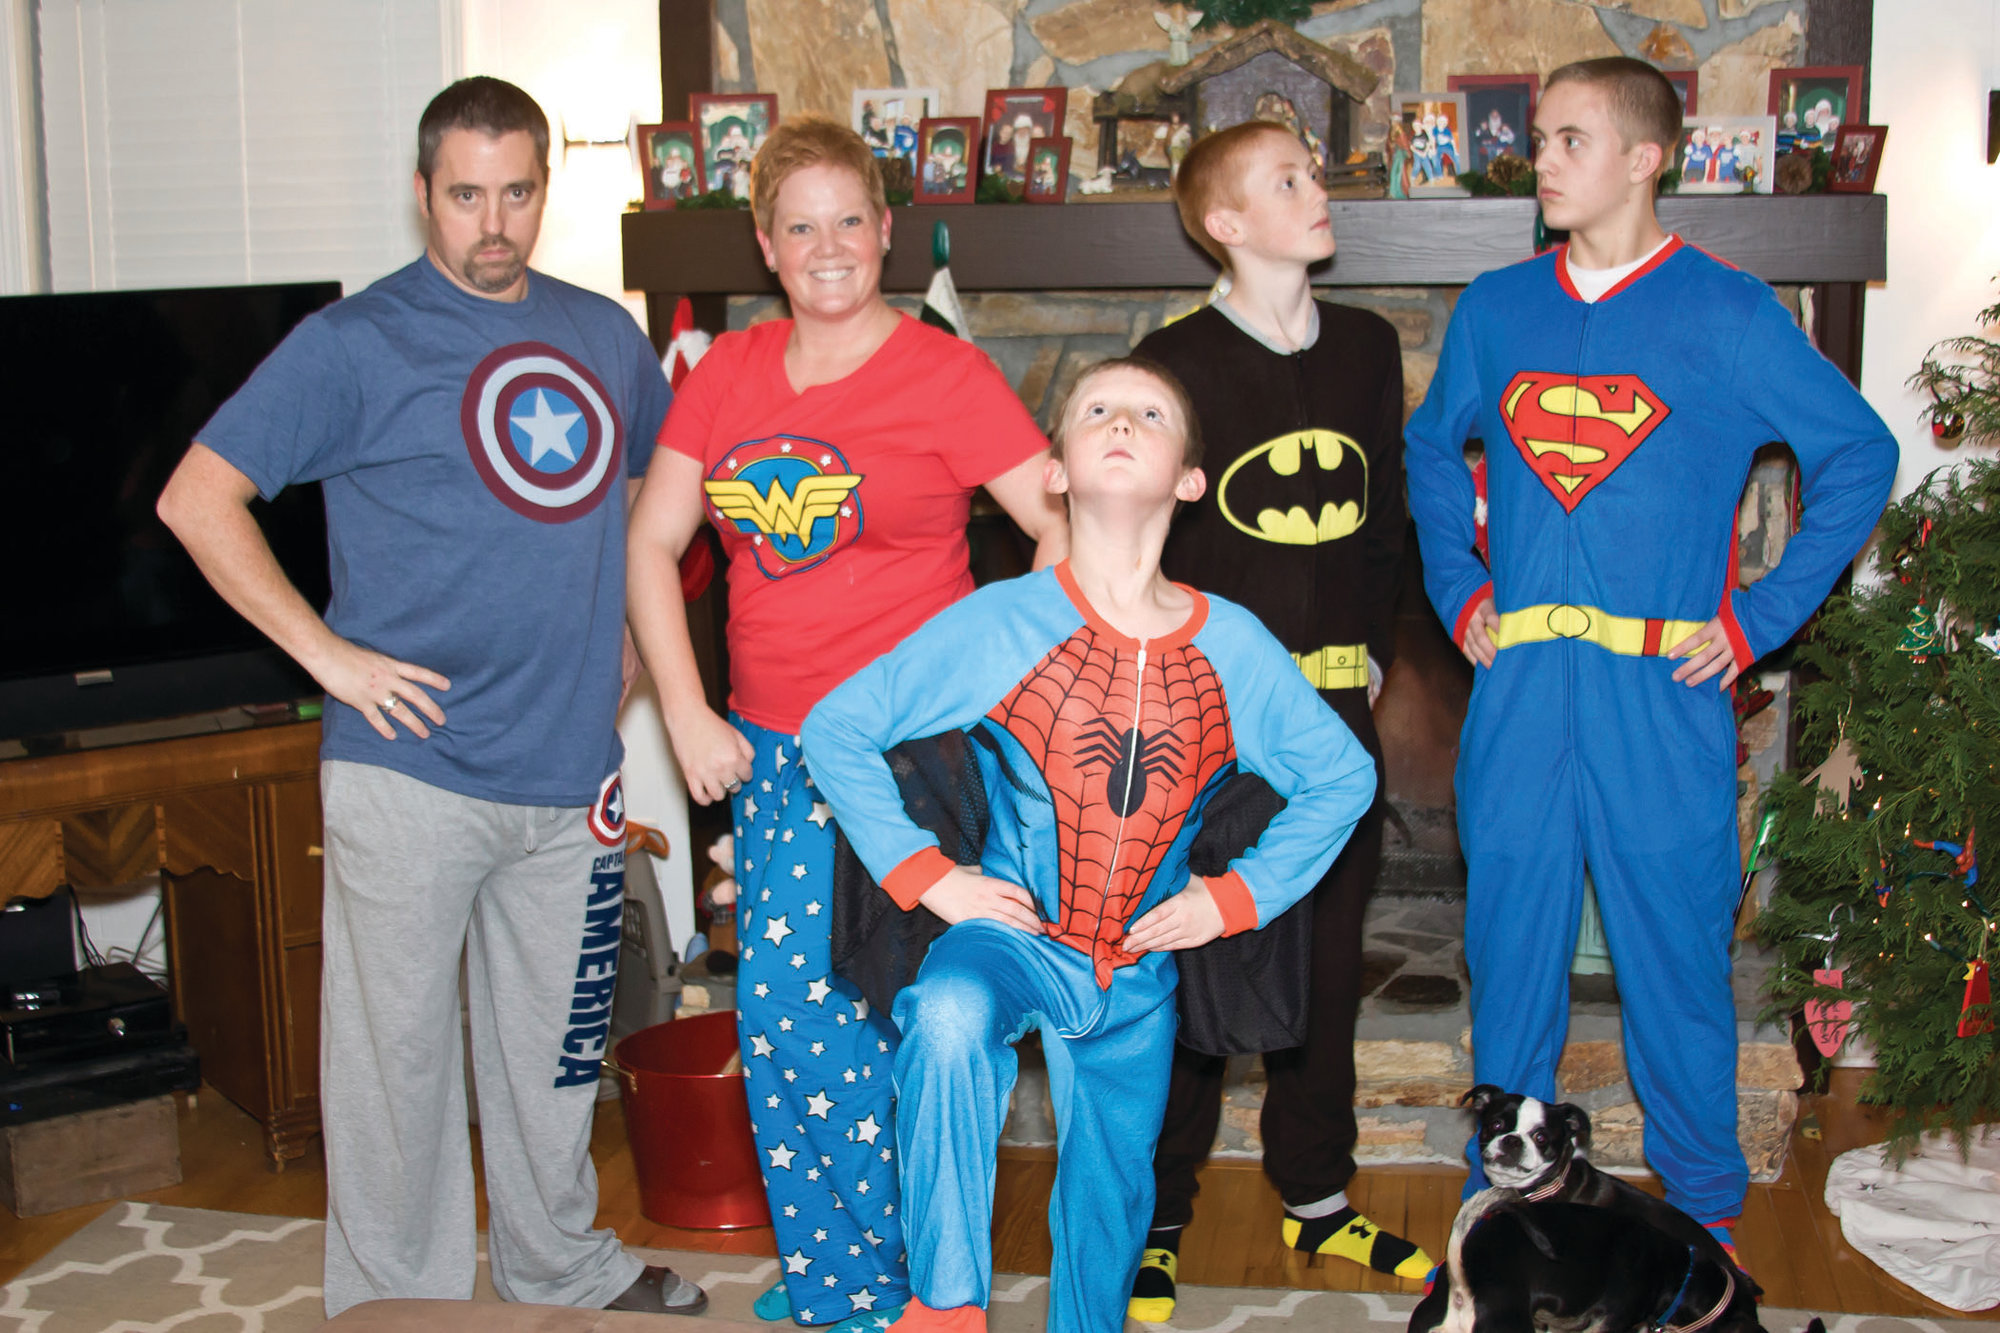 e9c673e045 This photo provided by Amy Wilson shows her children posing for a photo in  matching holiday